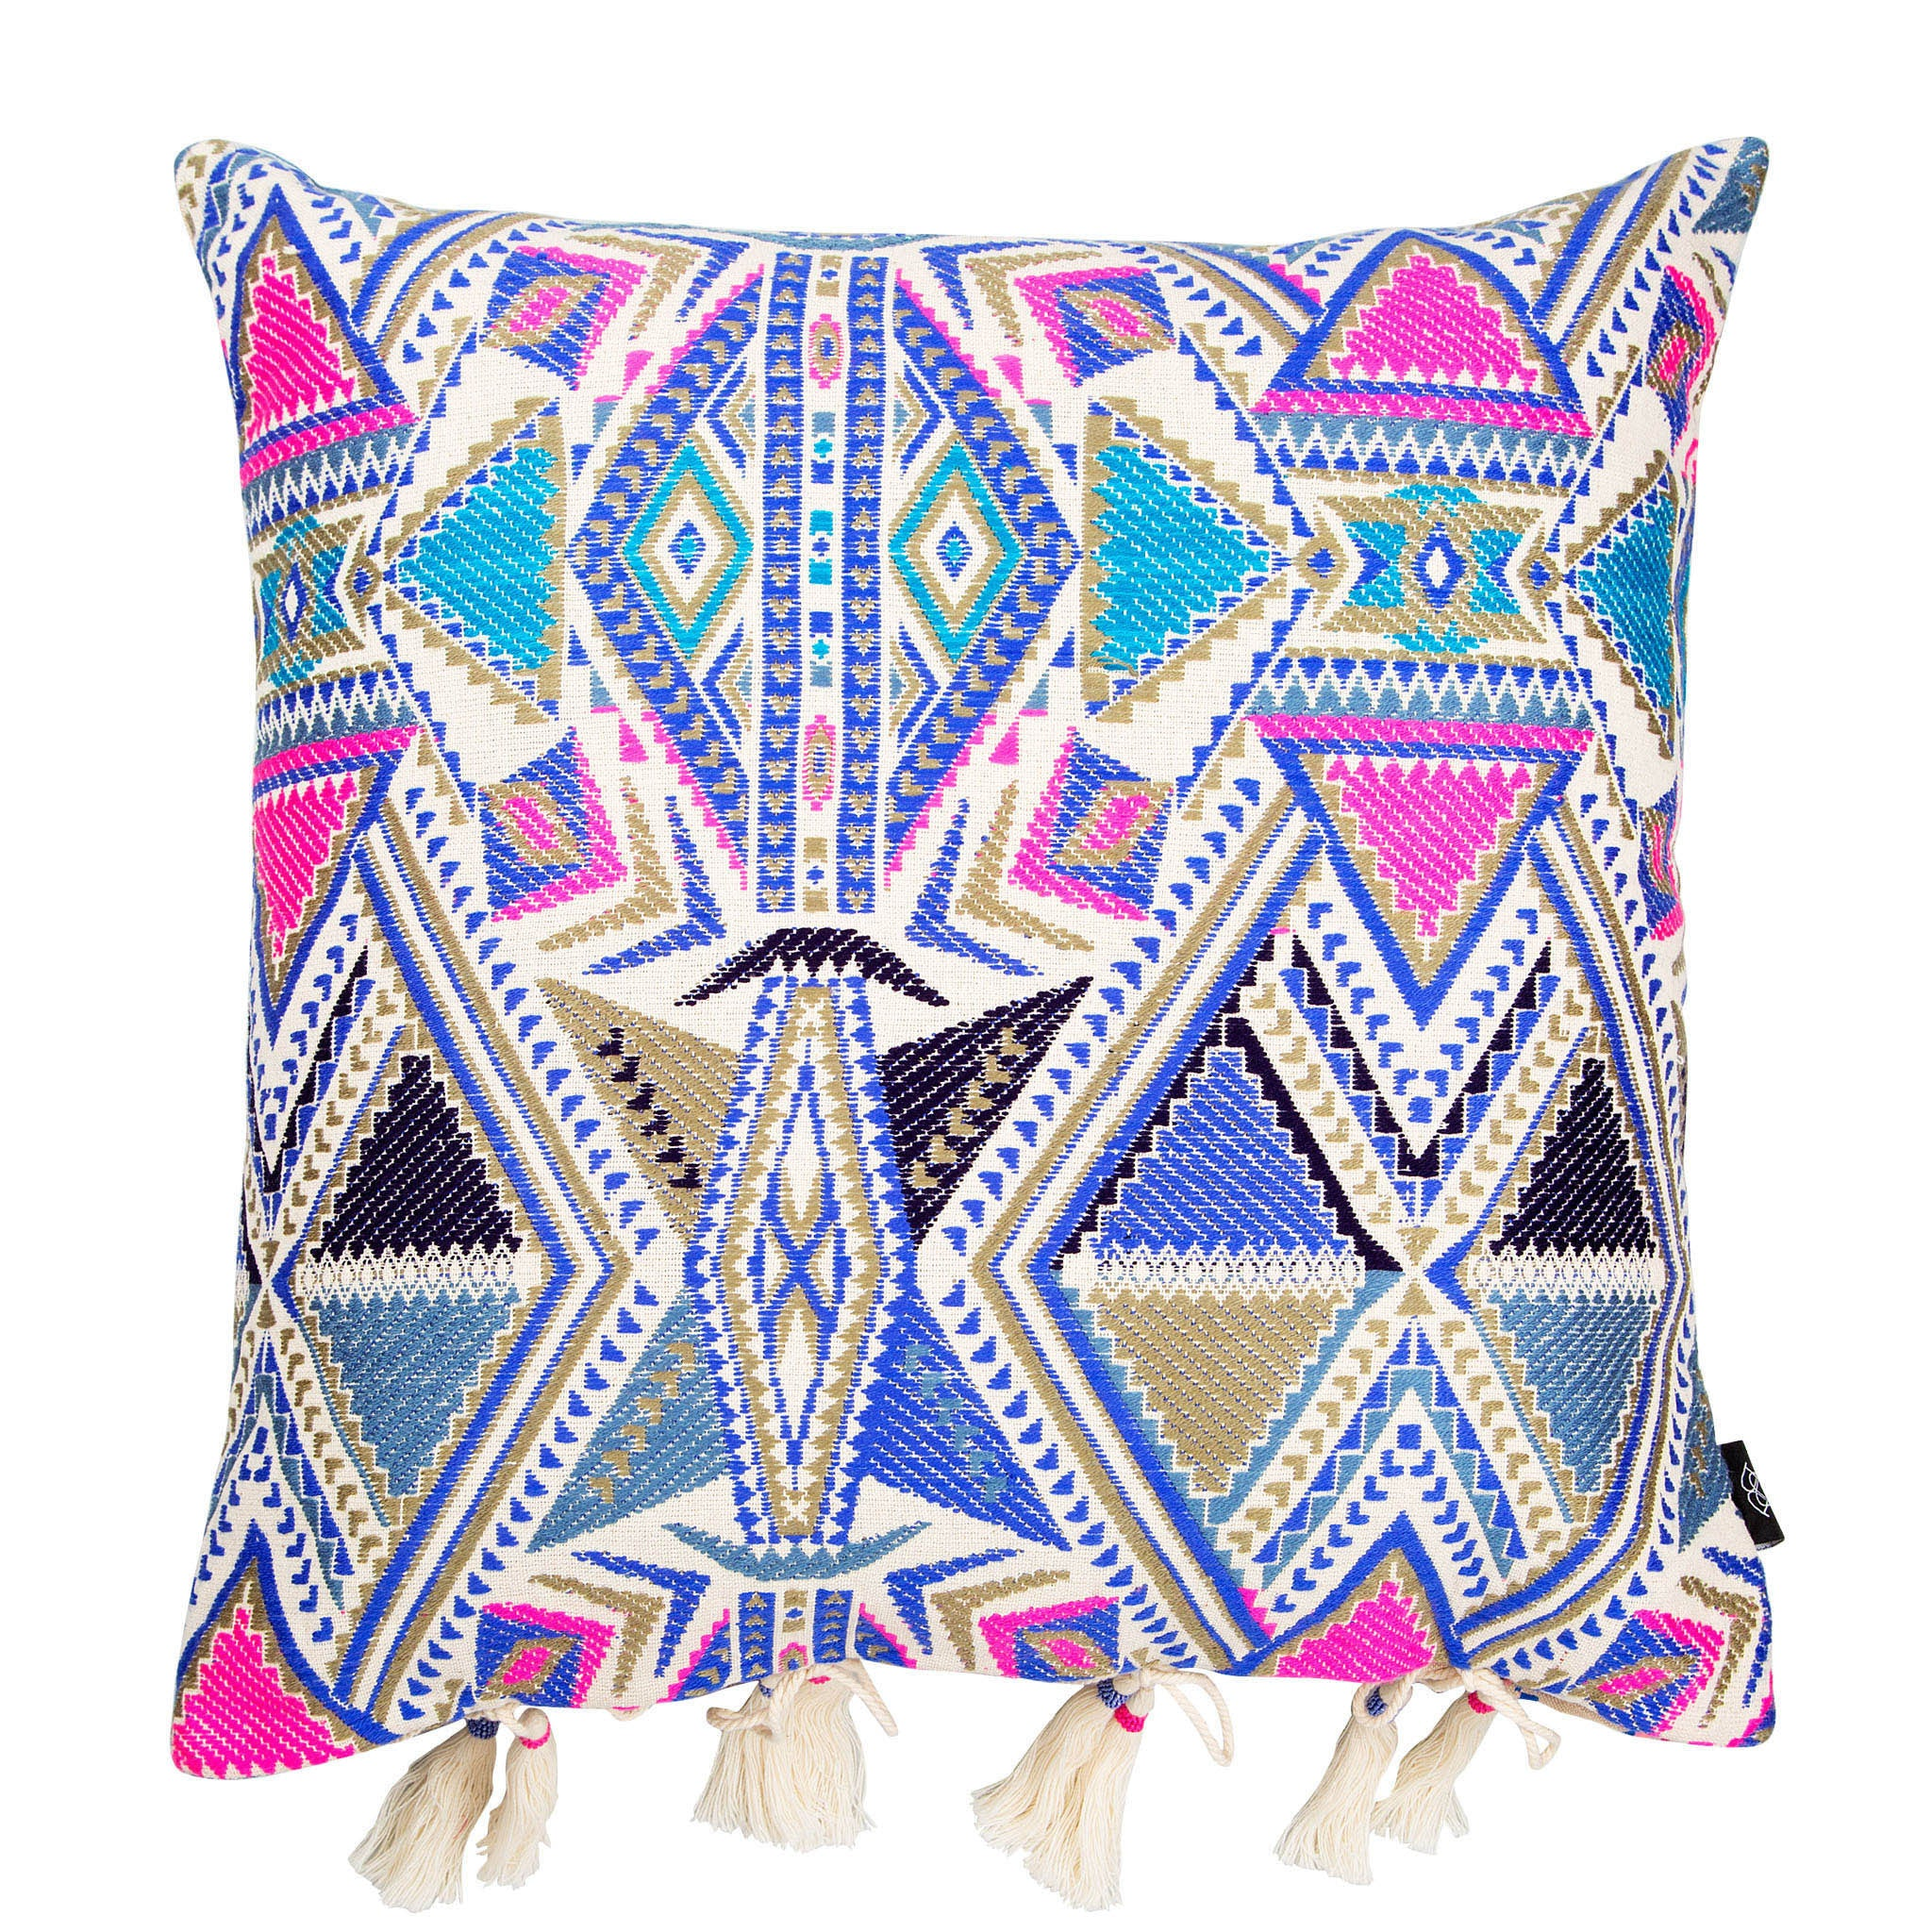 Bedouin-style pink, blue & white cotton tasselled cushion - Bivain - 1